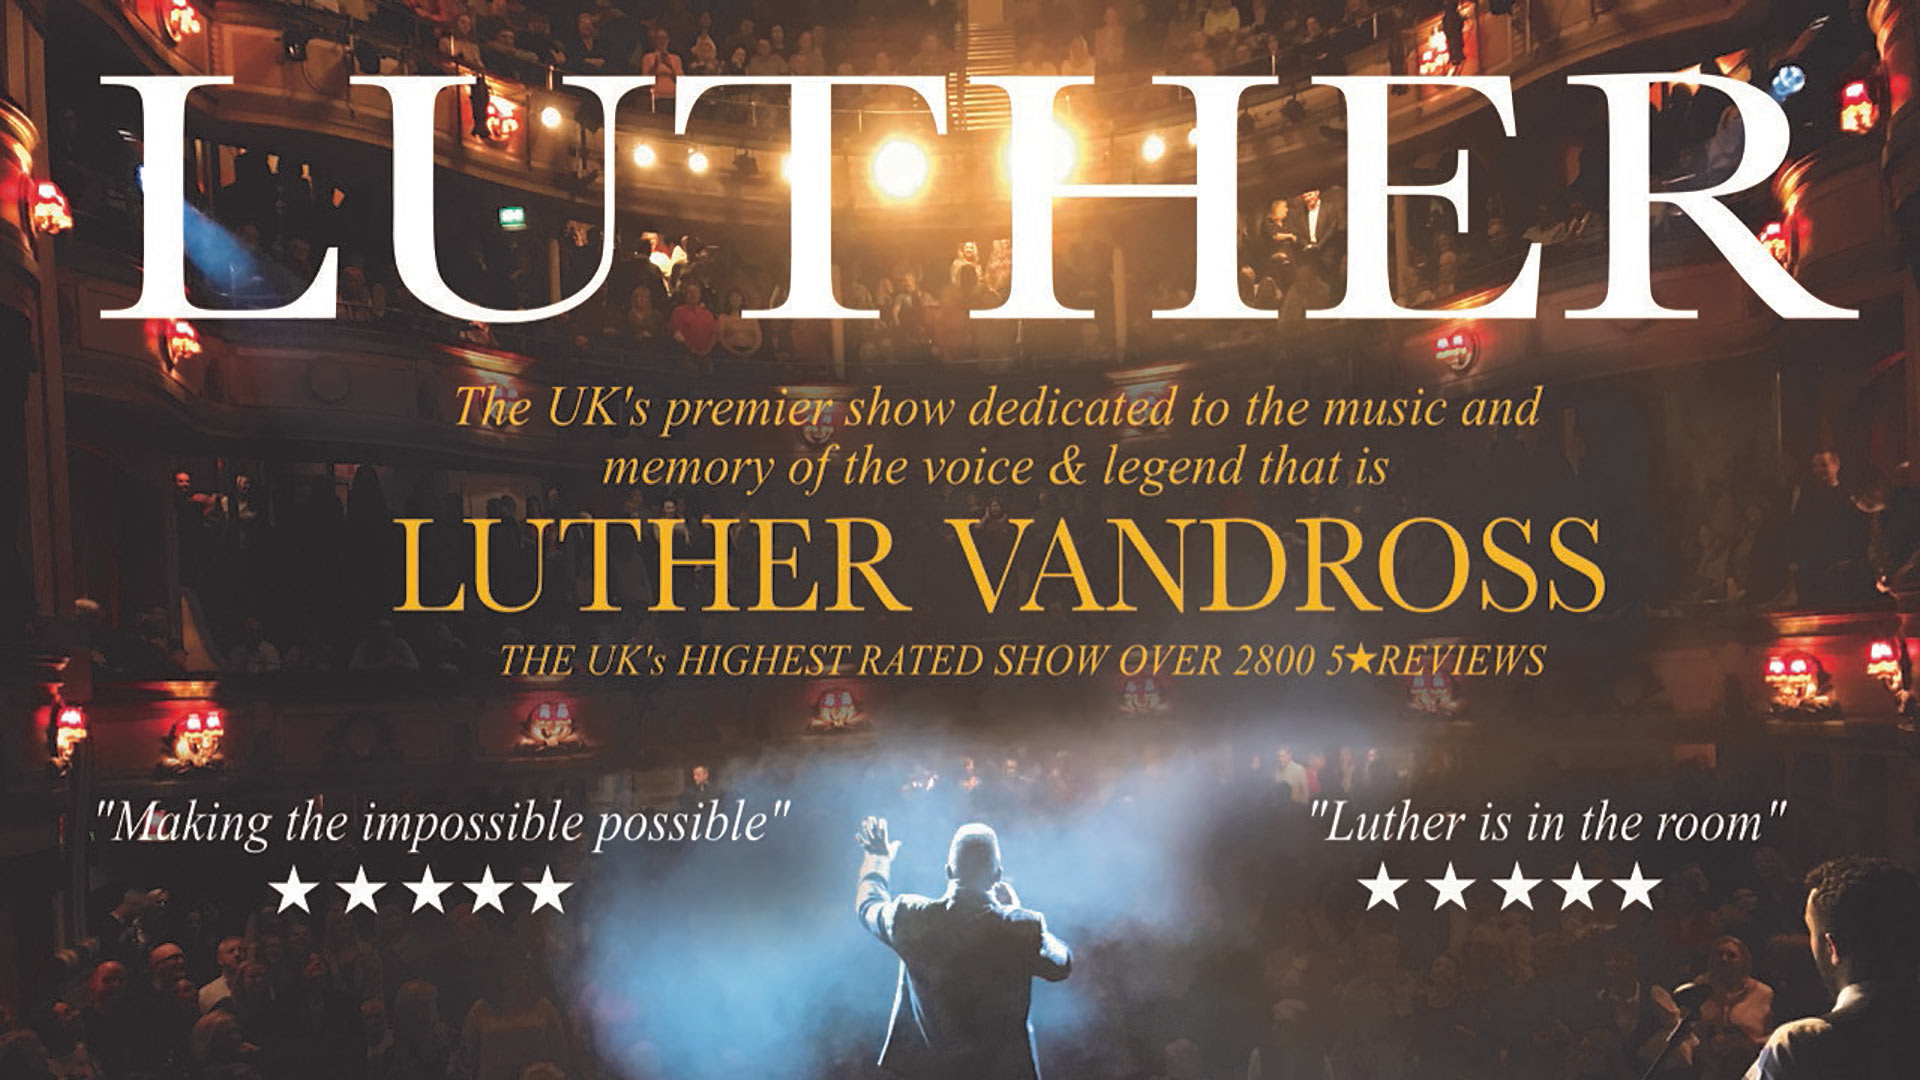 Image of Luther Vandross Celebration poster